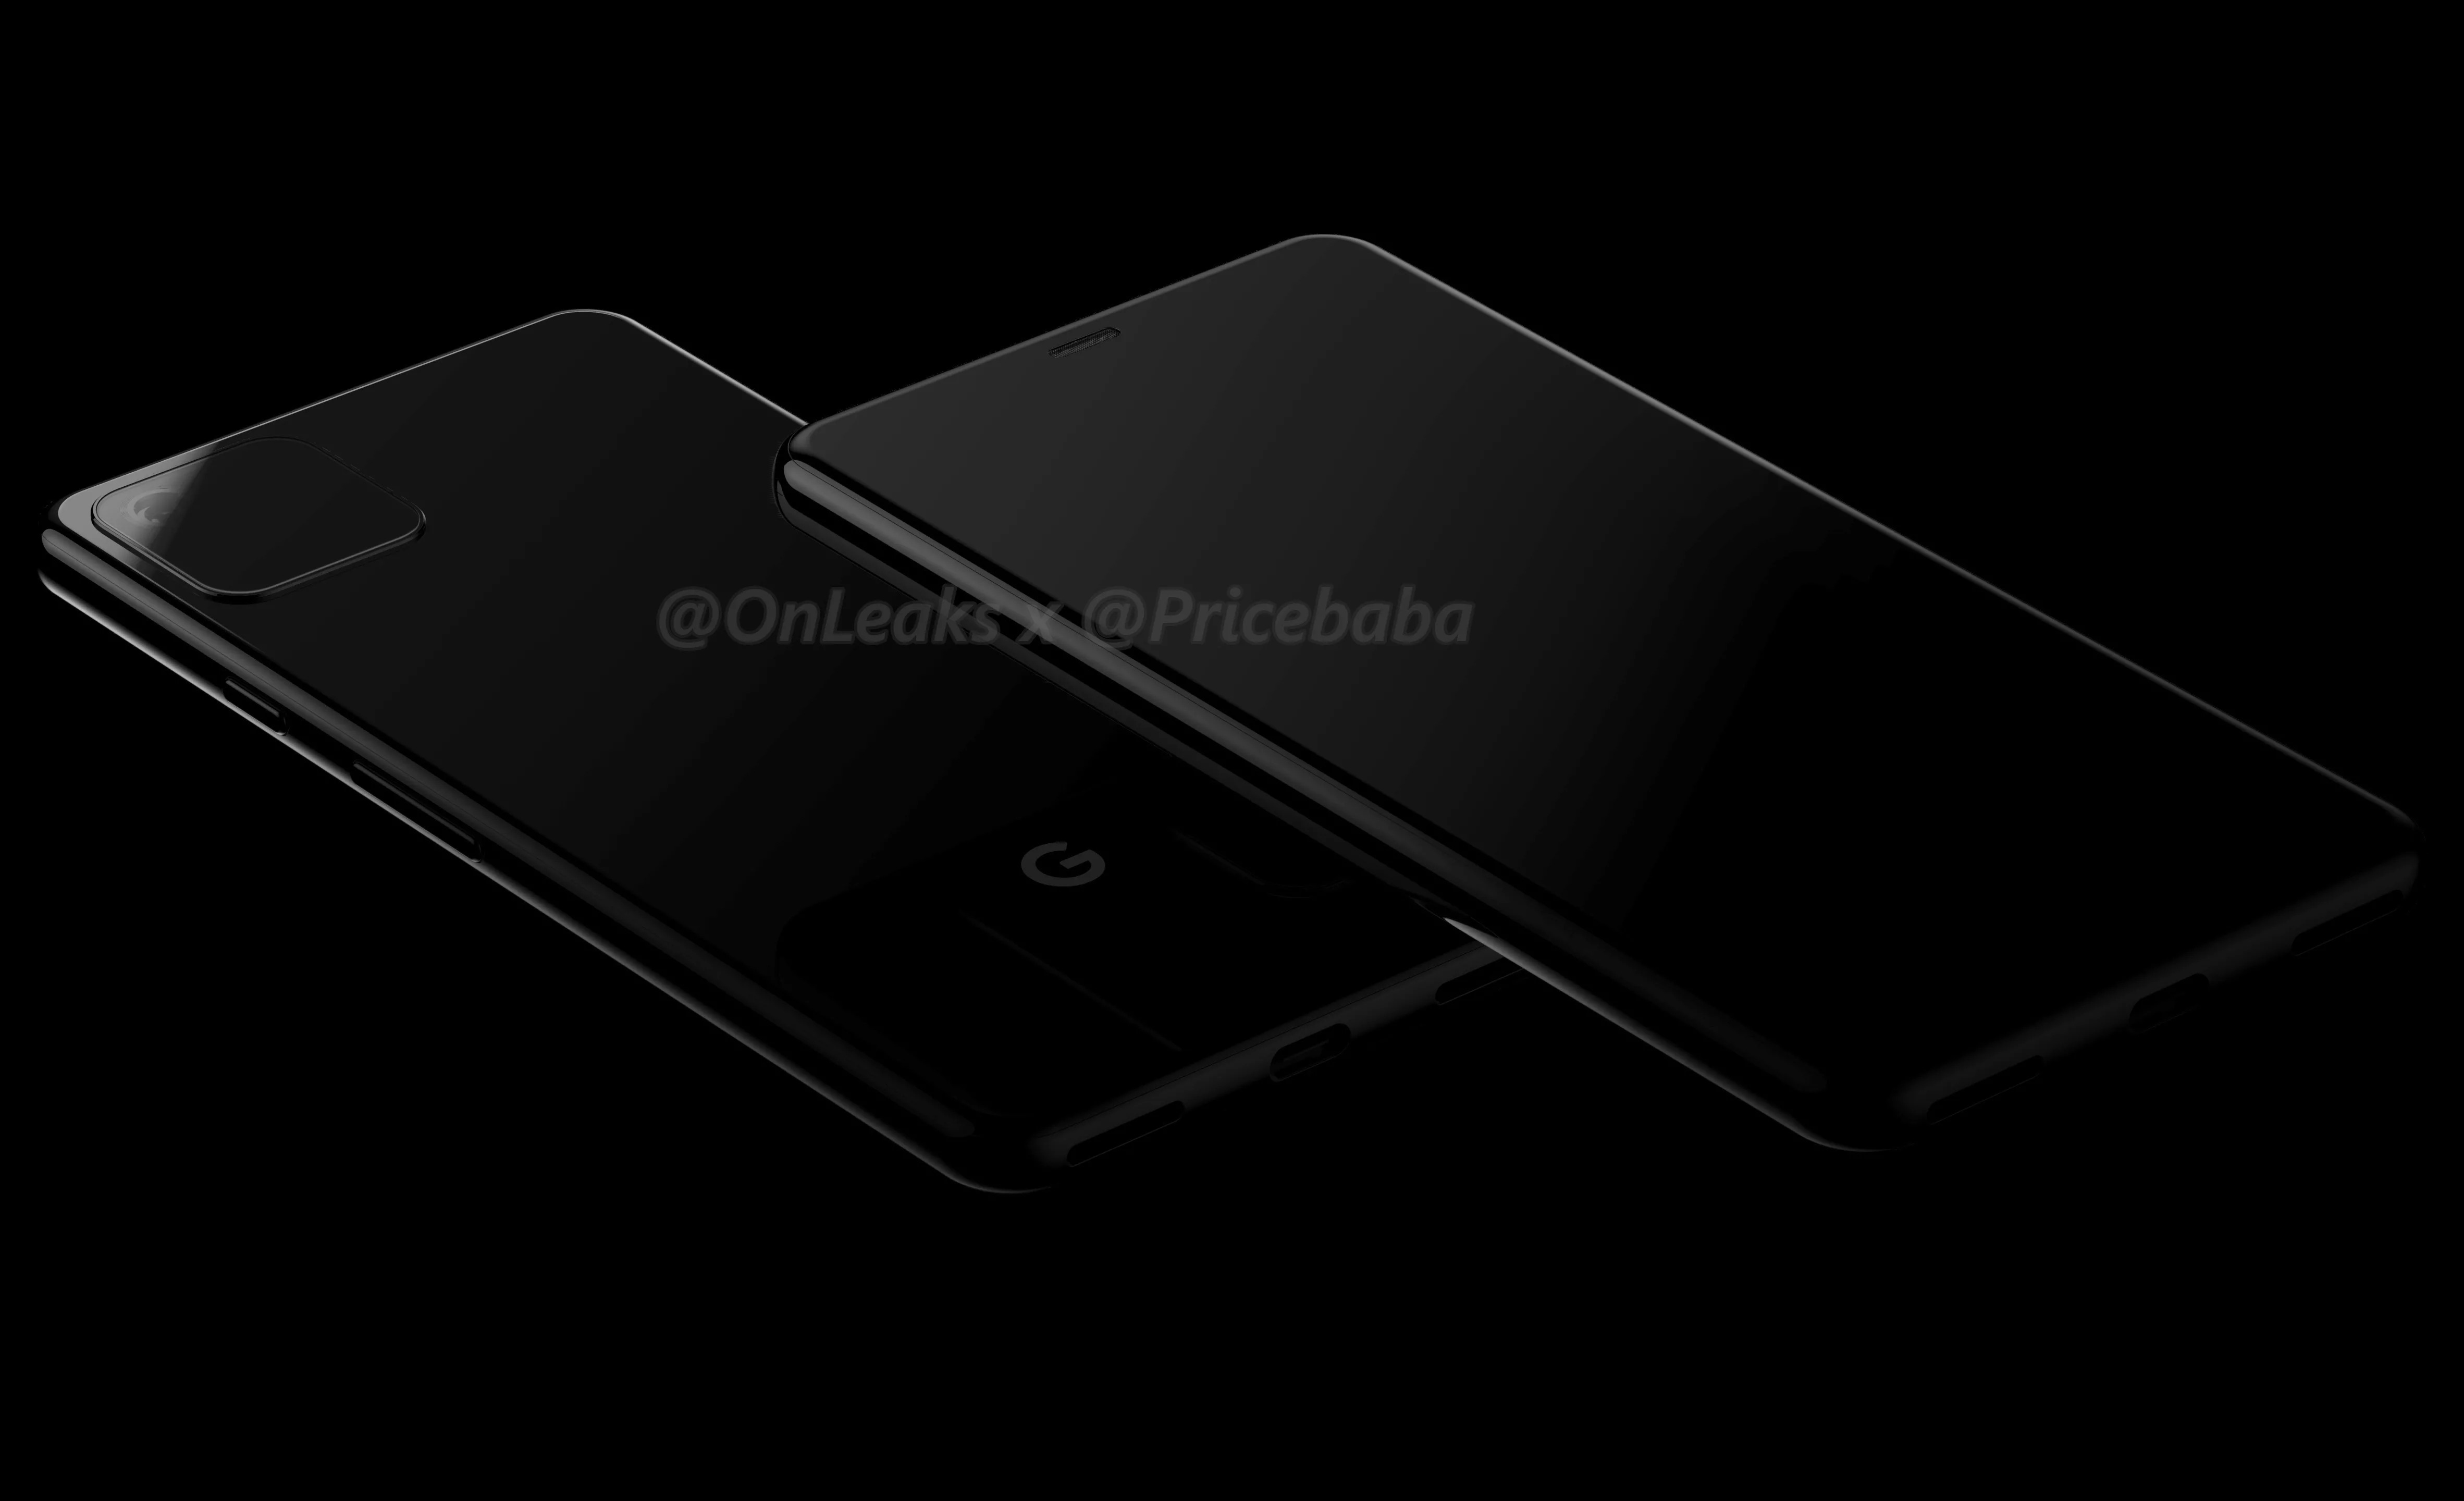 Google Pixel 4 leaked schematics show square camera bump, missing fingerprint scanner